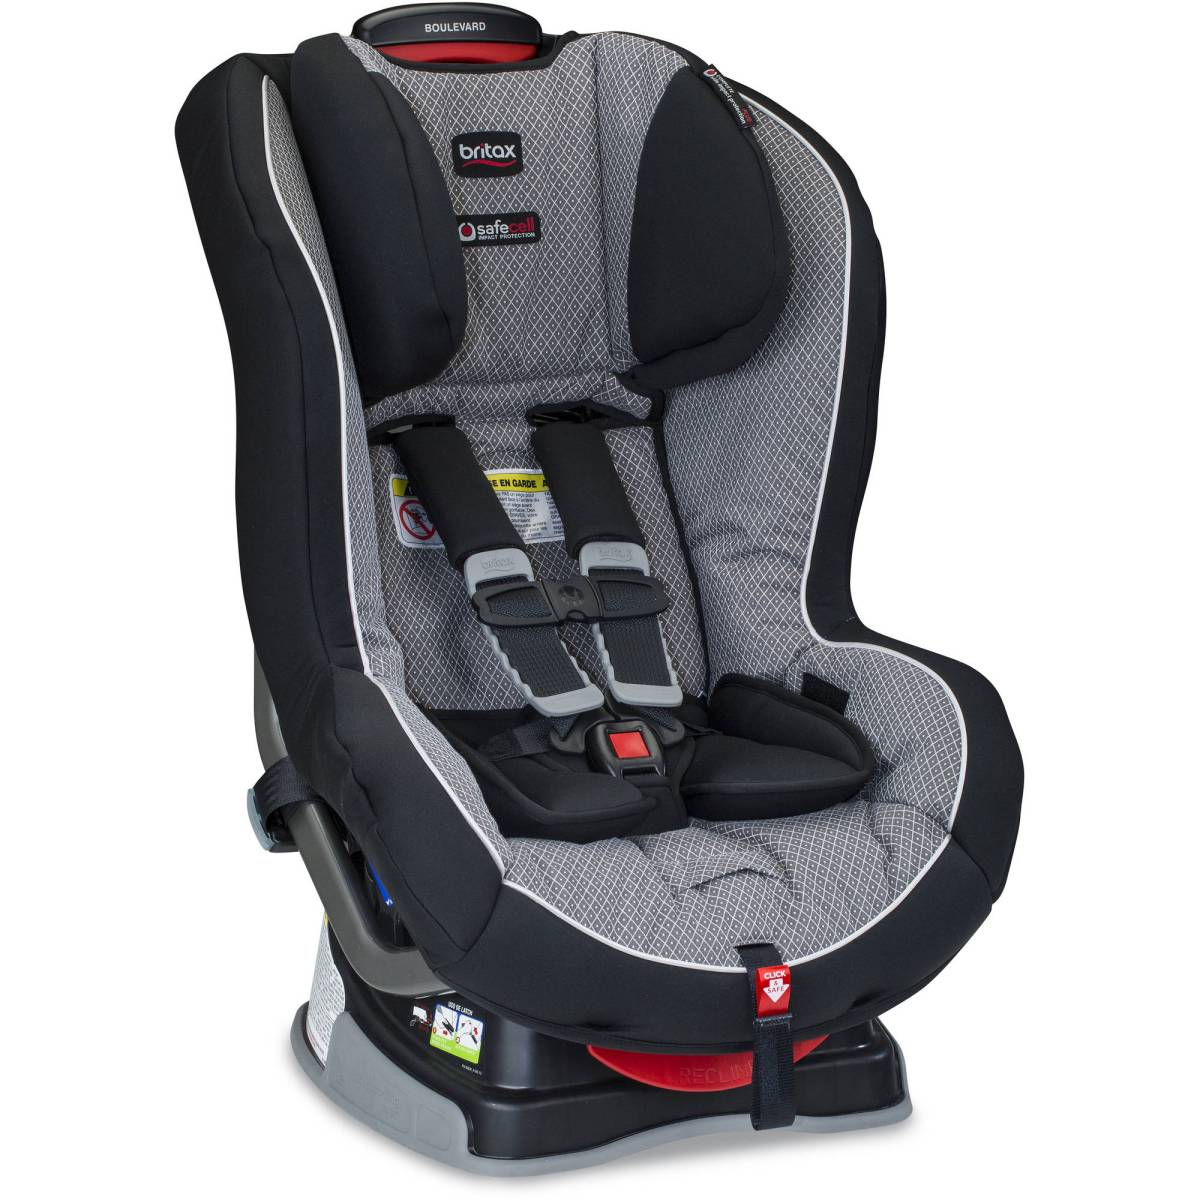 New Rear Facing Car Seat Law In California Should Save